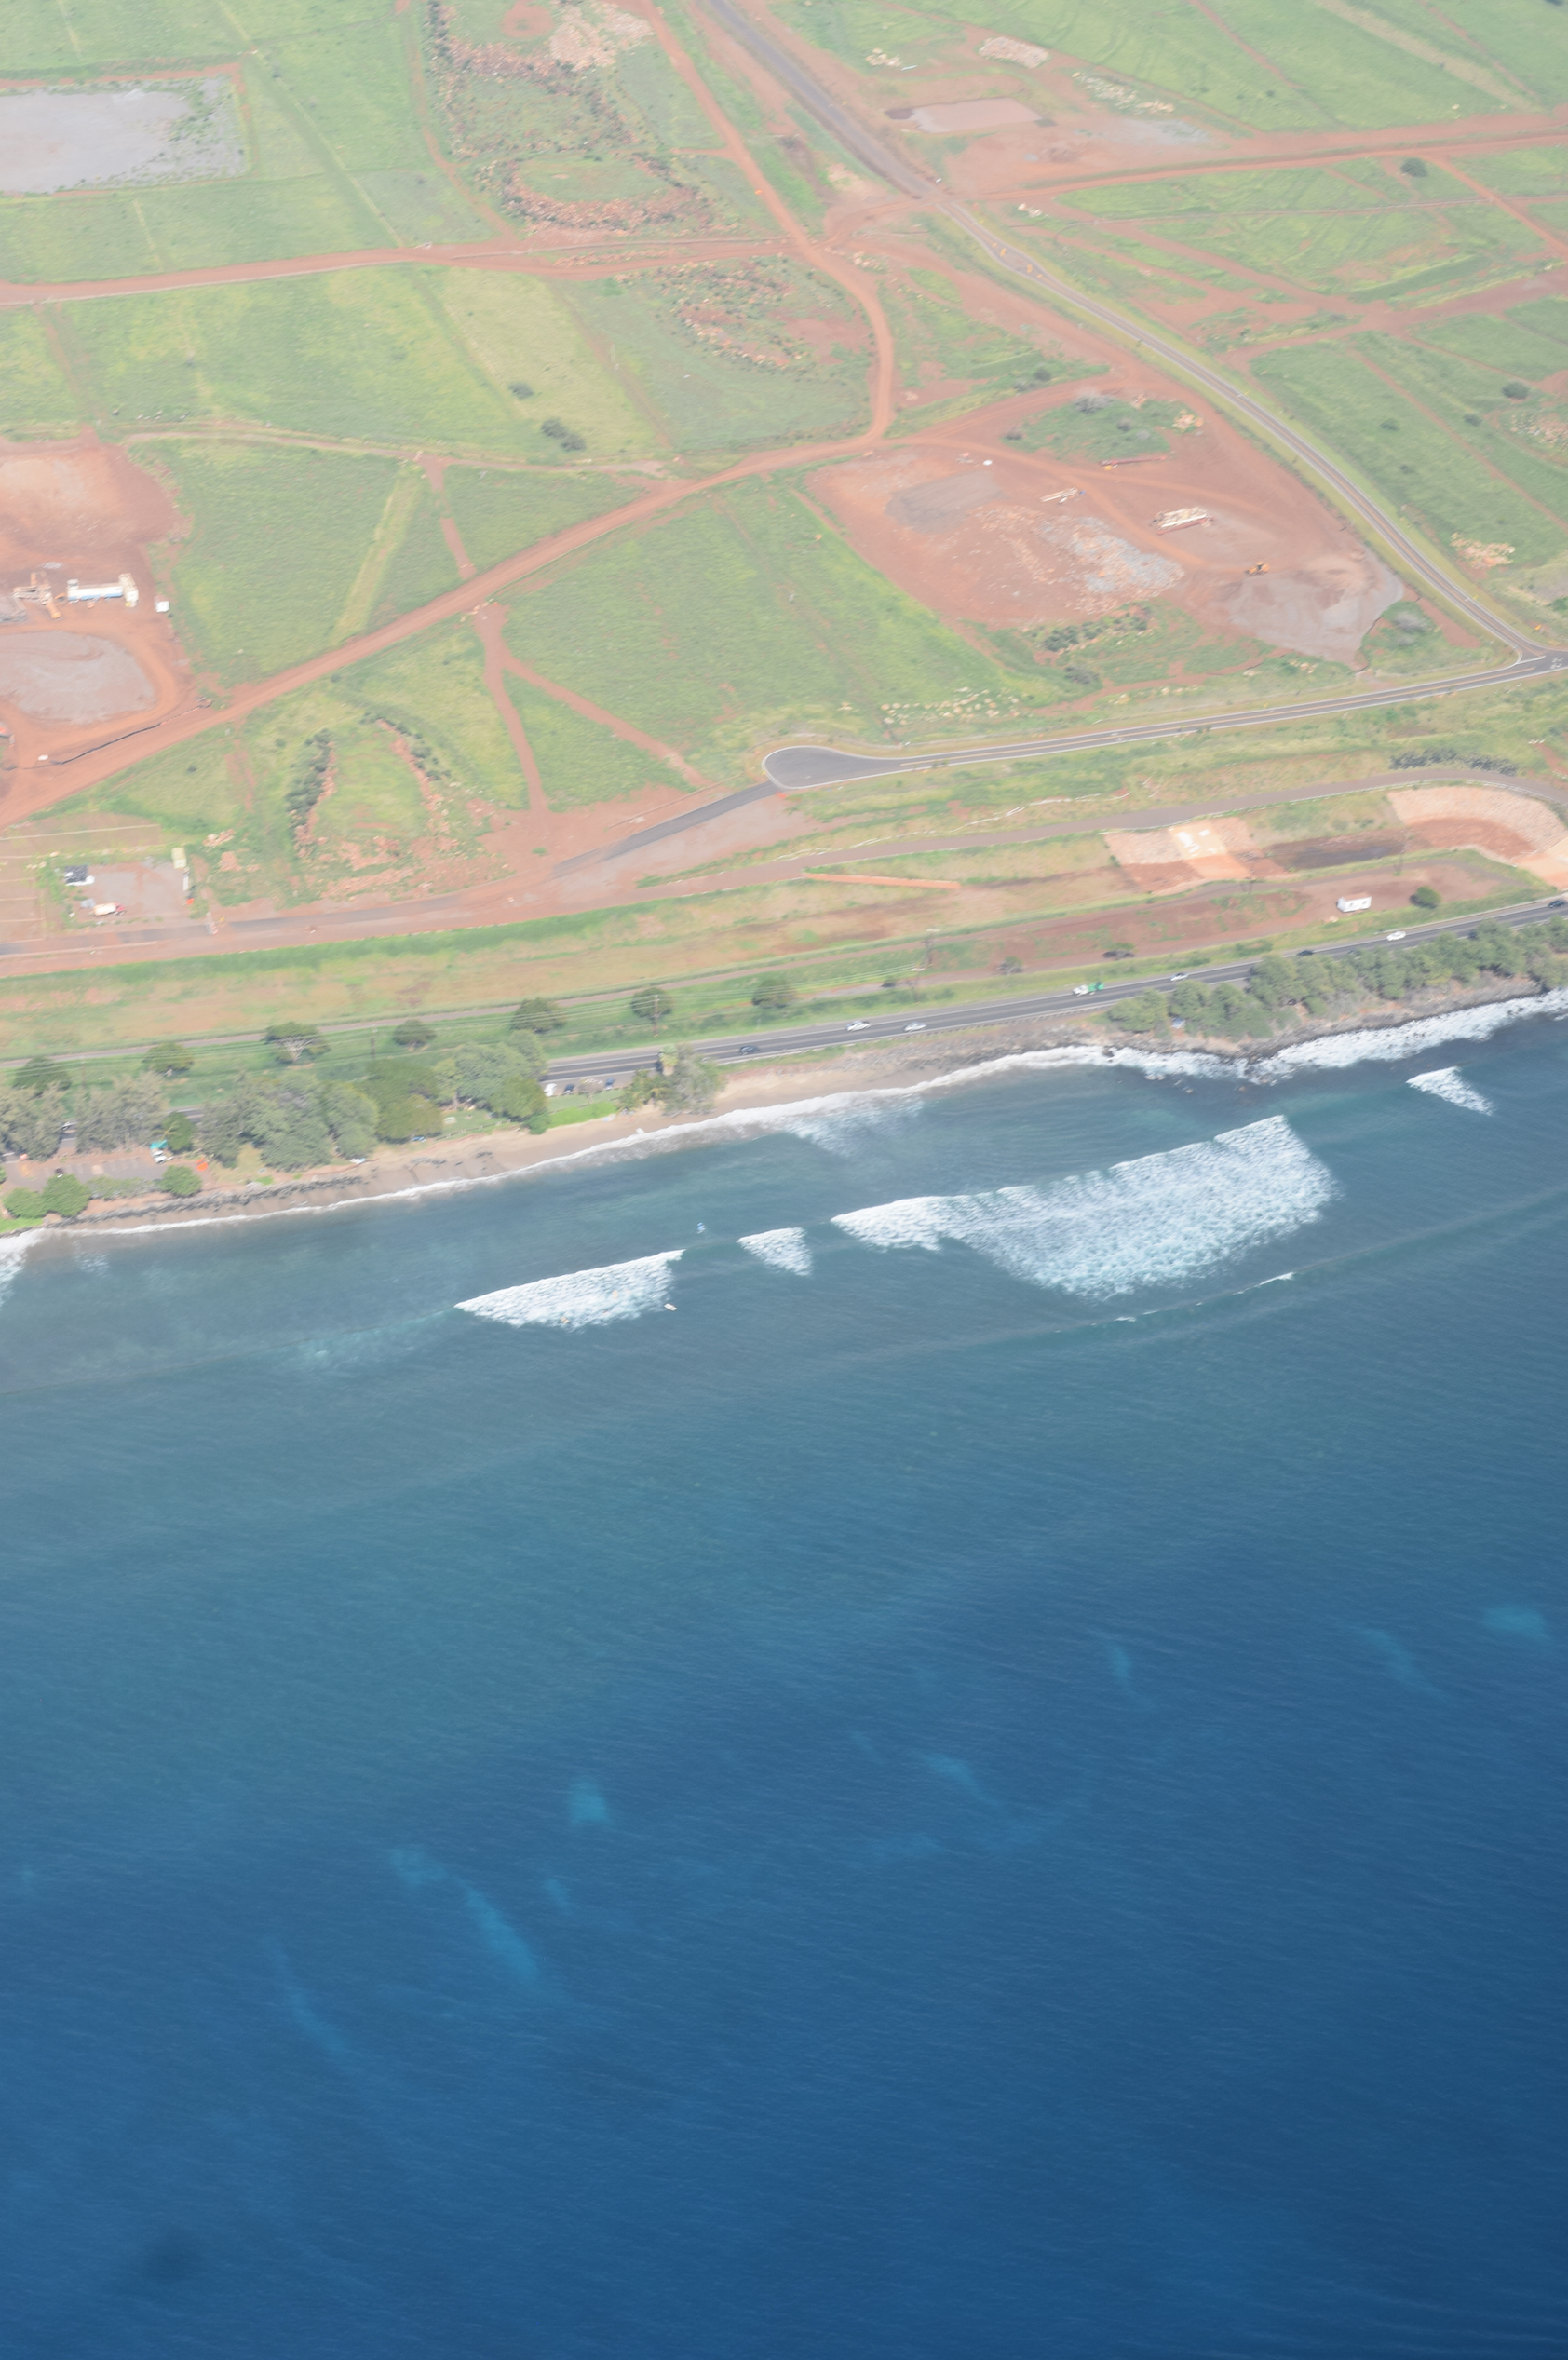 Maui Reef - Helicopter Tours In Hawaii - Should you book it?